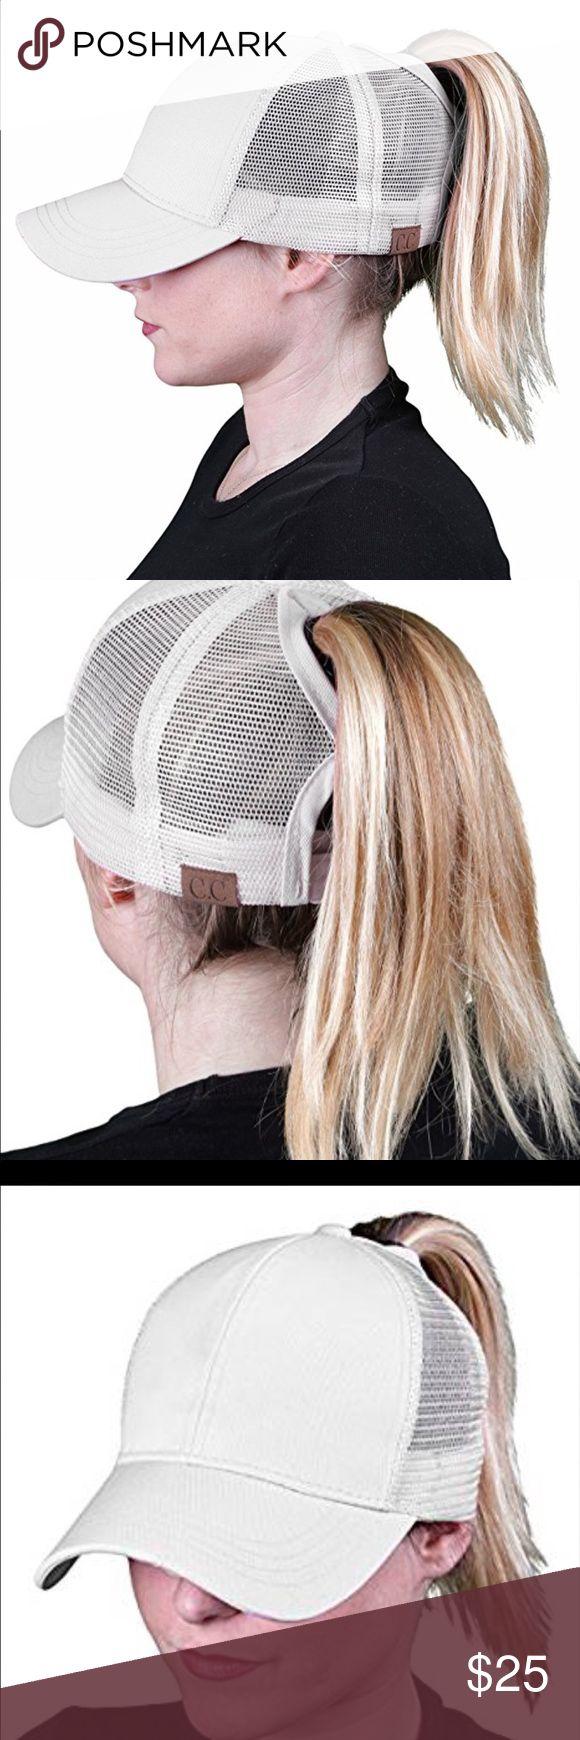 """🆕 Ponycap Messy High Bun Ponytail Mesh Cap One size fits most with adjustable hook and loop fastener. Ponytail slot 3"""" by 5"""". Perfect for pulling your messy bun or high ponytail through. Simply pull hair through slot and adjust to desired style. Even suitable for man buns! This listing is for white. Boutique Accessories Hats"""